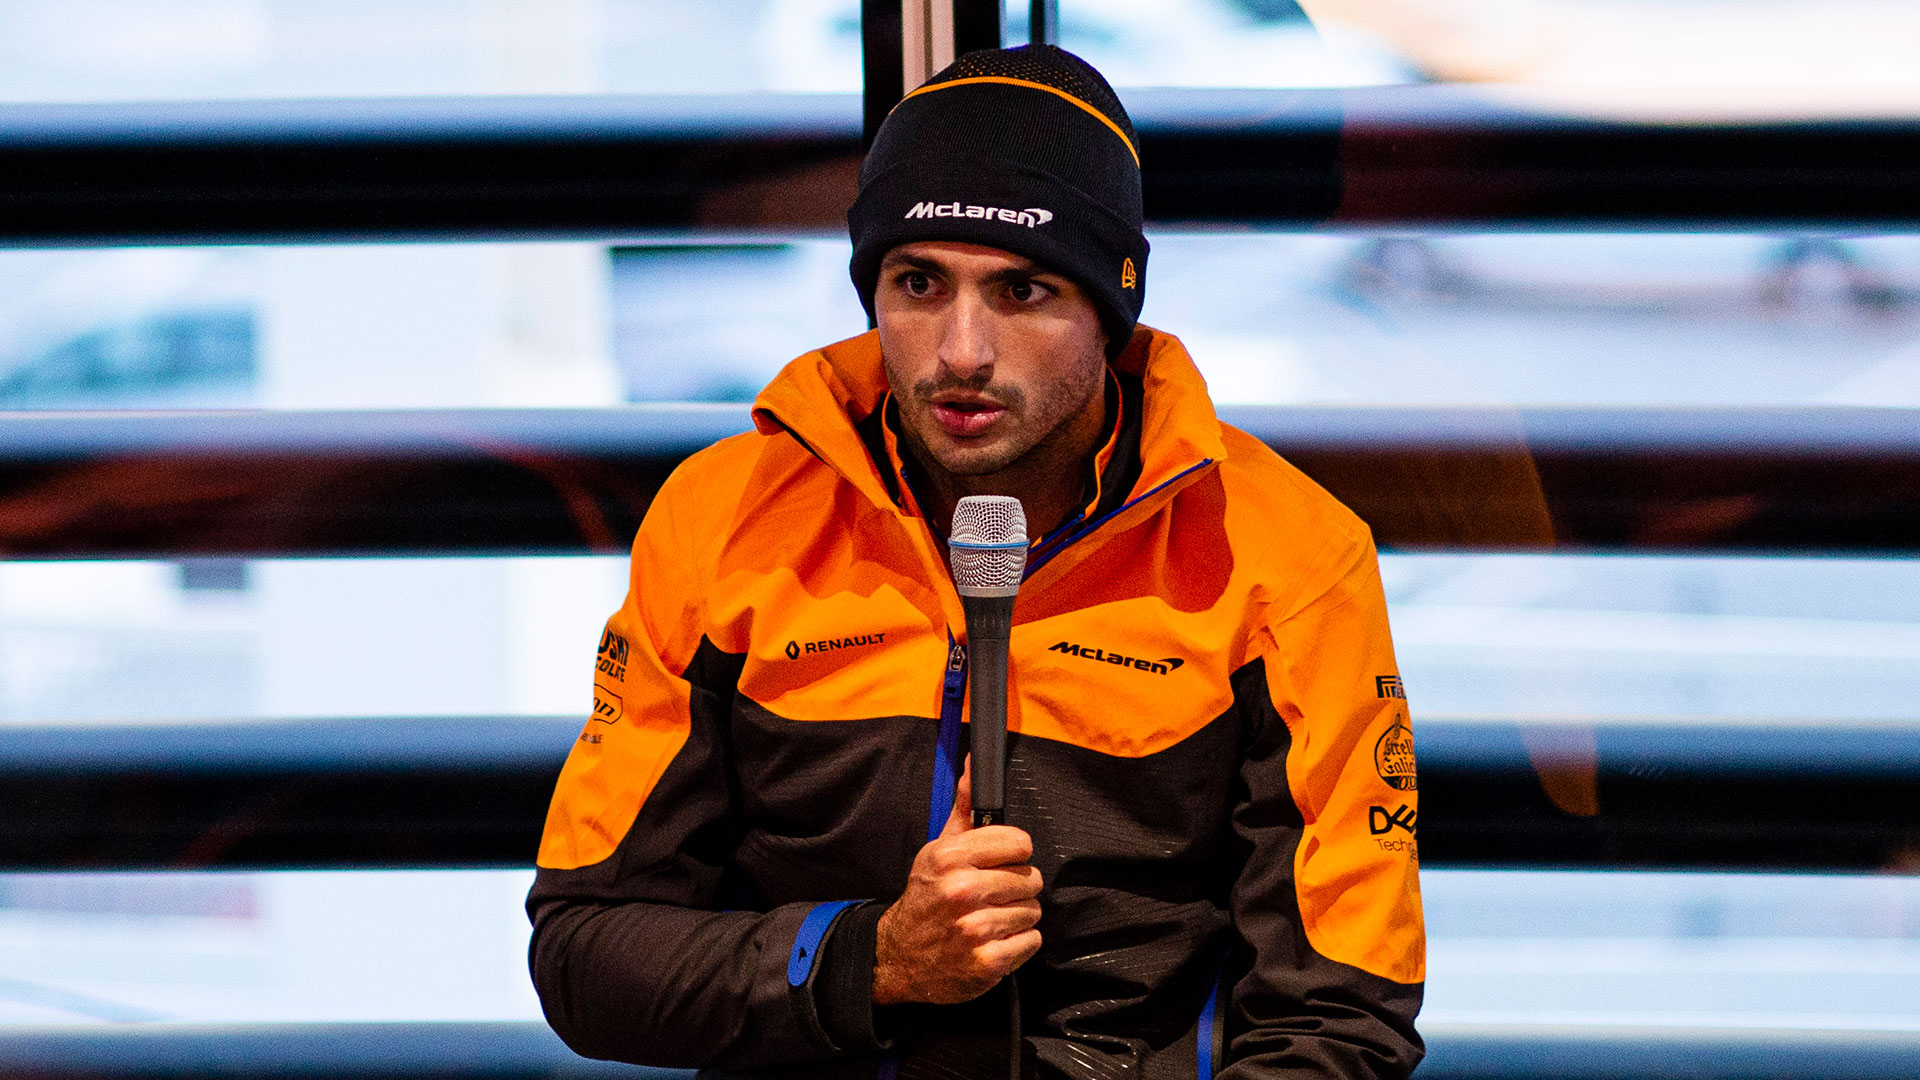 McLaren's Carlos Sainz says 'The car feels amazing' after first day of testing with 2020 F1 challenger